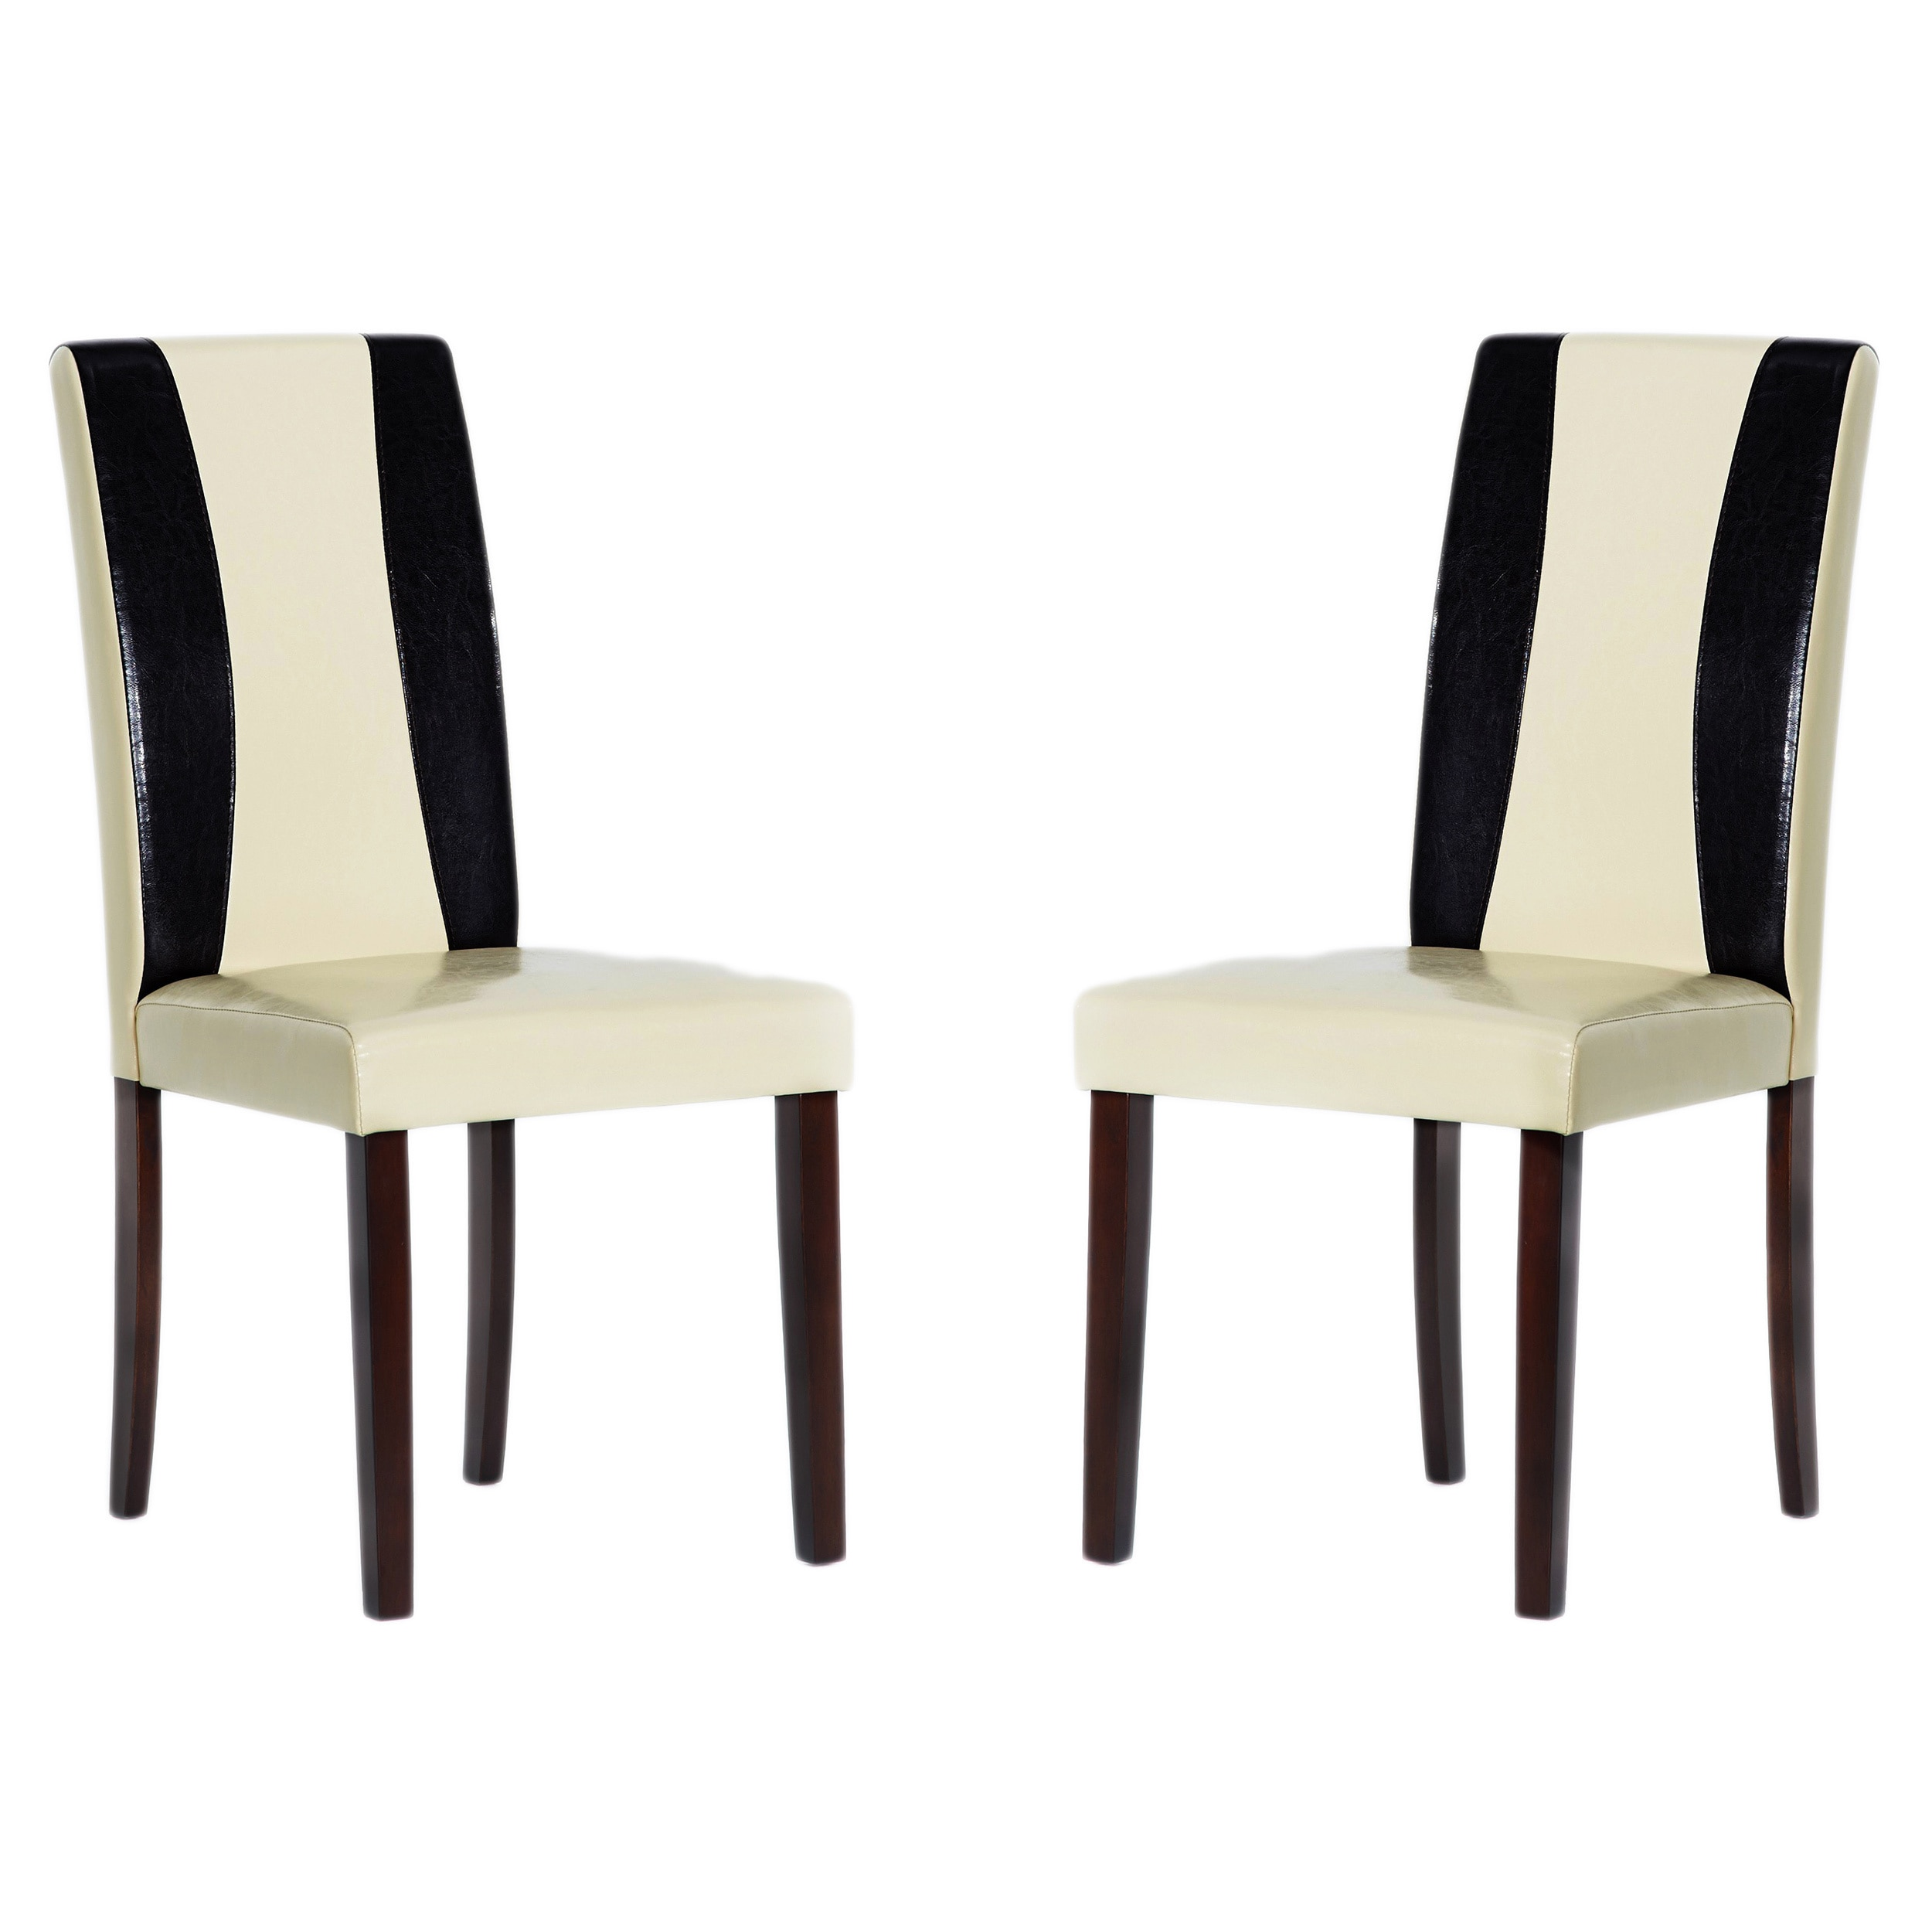 Set Of 4 Kitchen Dining Room Chairs Online At Our Best Bar Furniture Deals